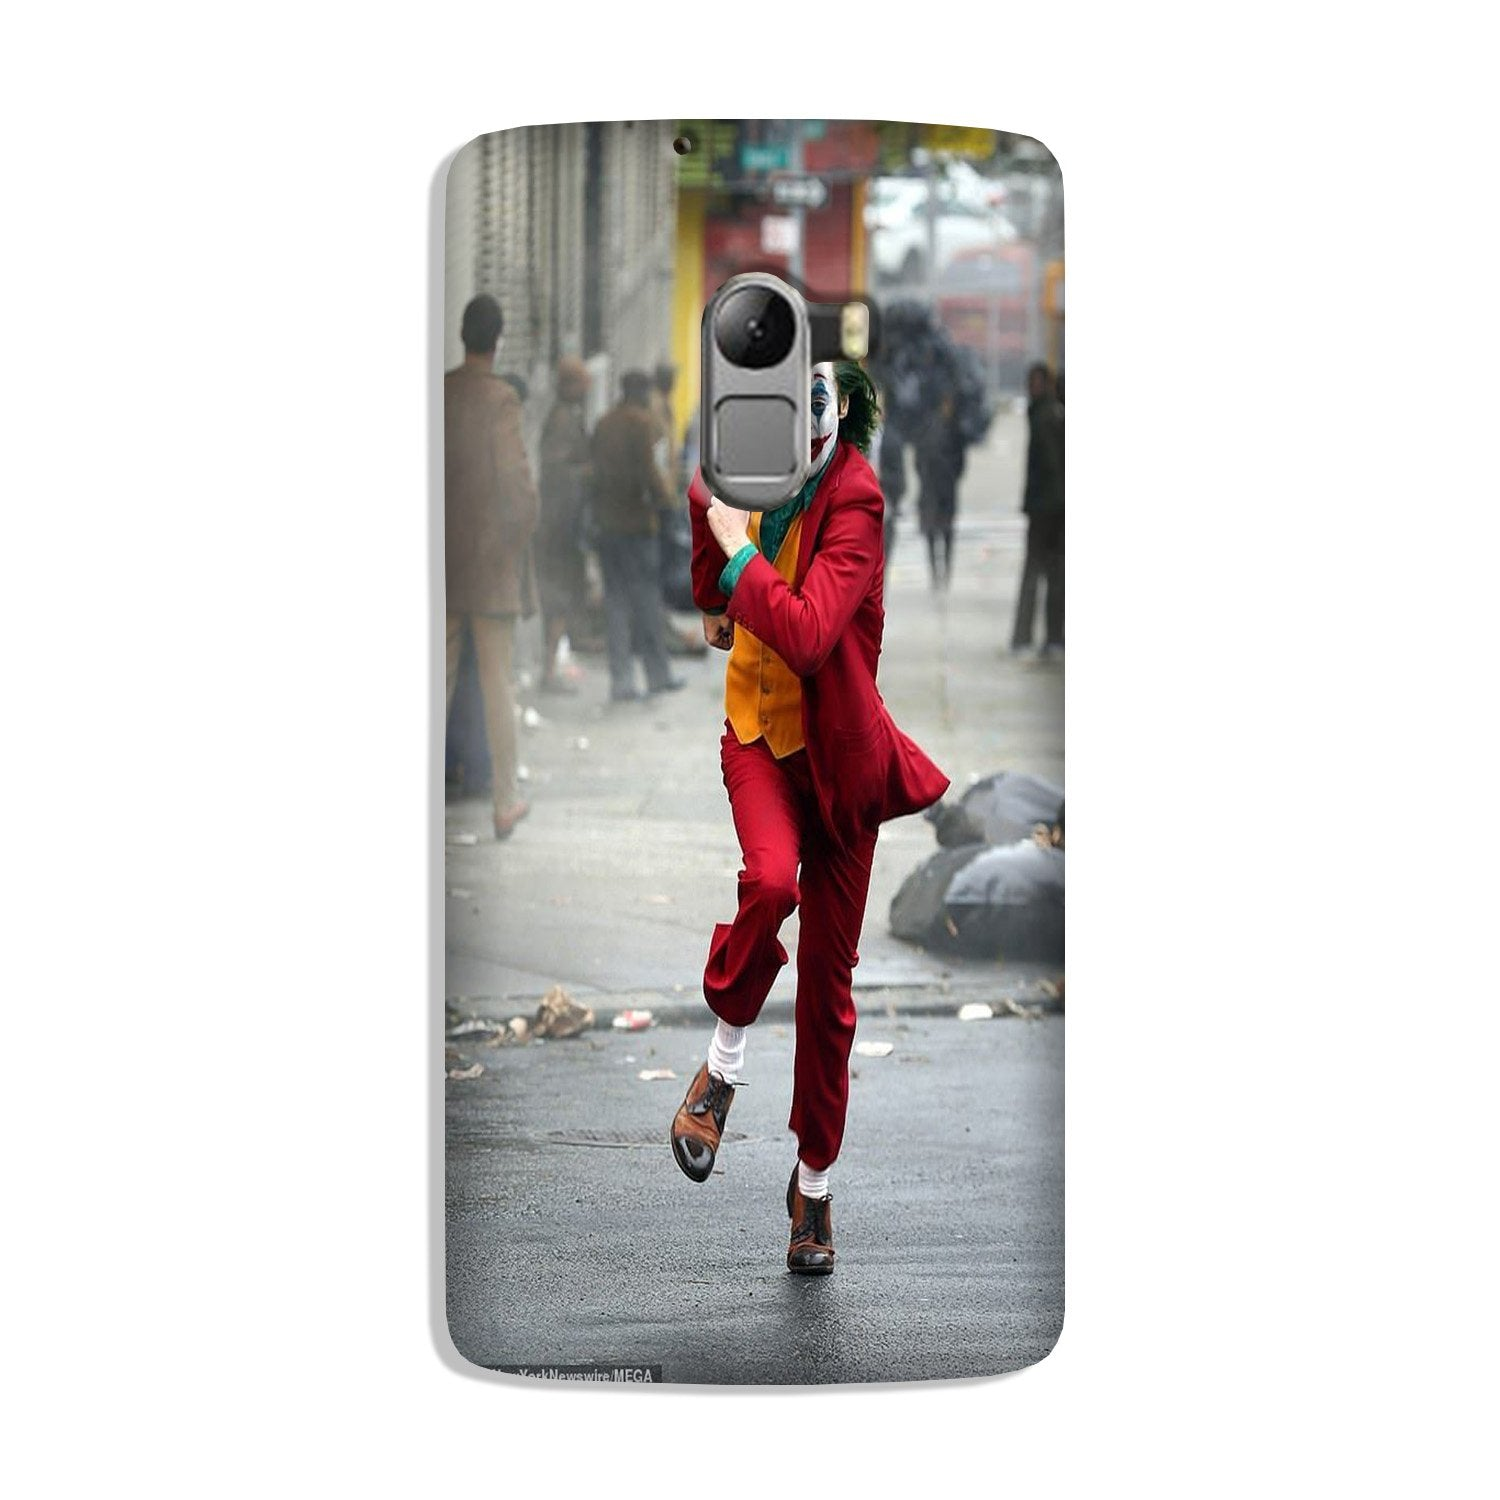 Joker Mobile Back Case for Lenovo K4 Note (Design - 303)